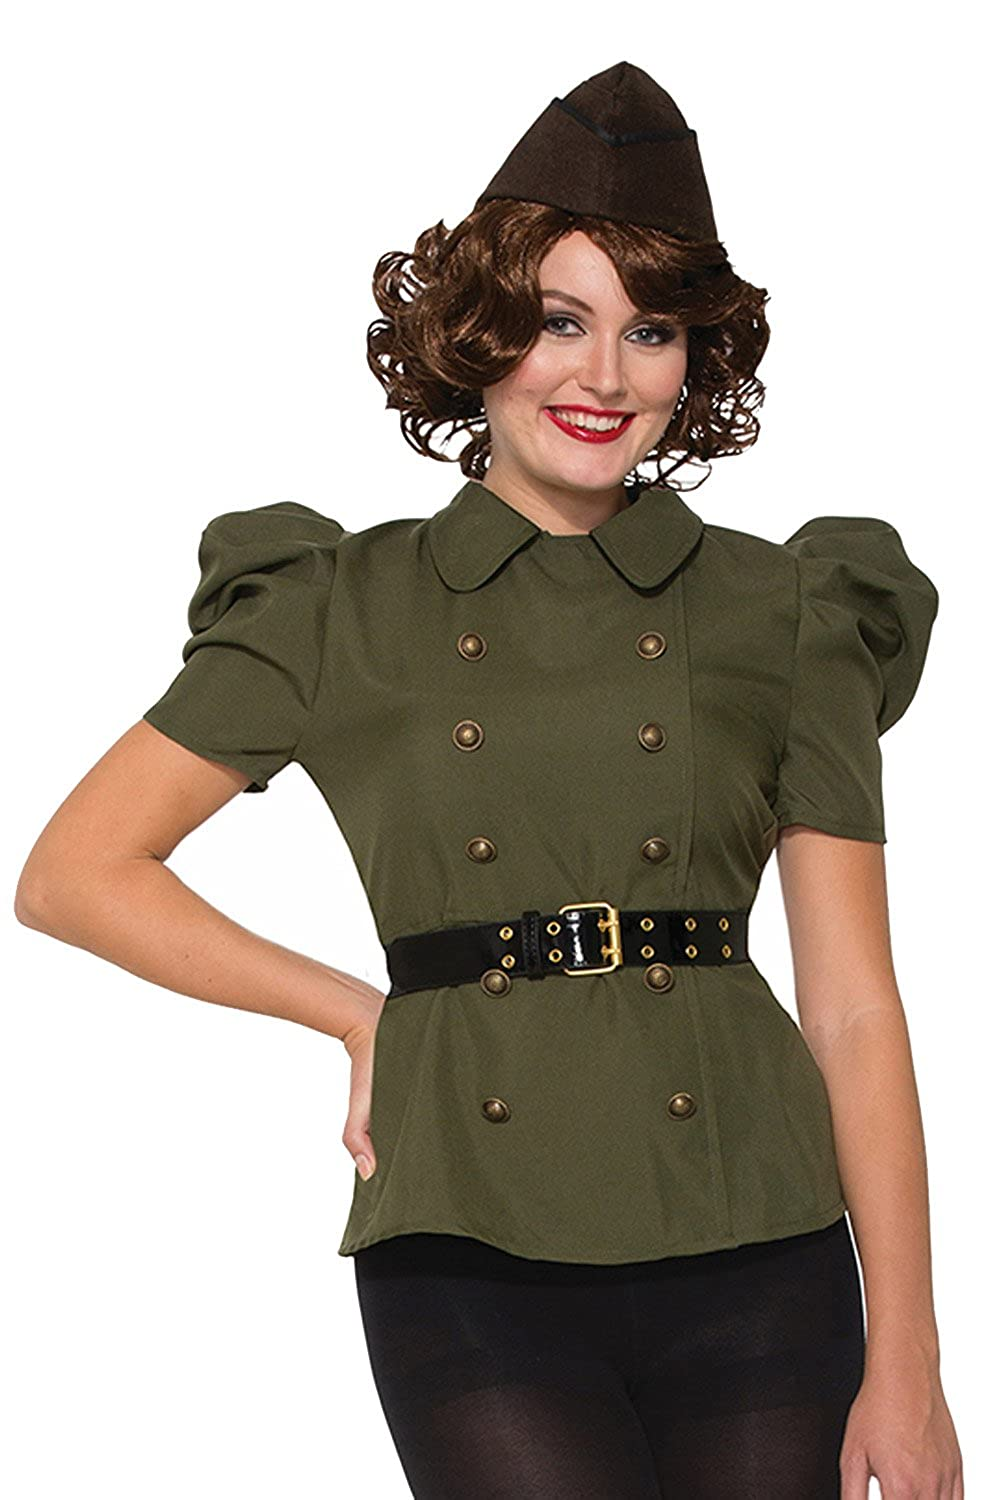 1940s Blouses and Tops Bombshells Adult Costume- $24.47 AT vintagedancer.com